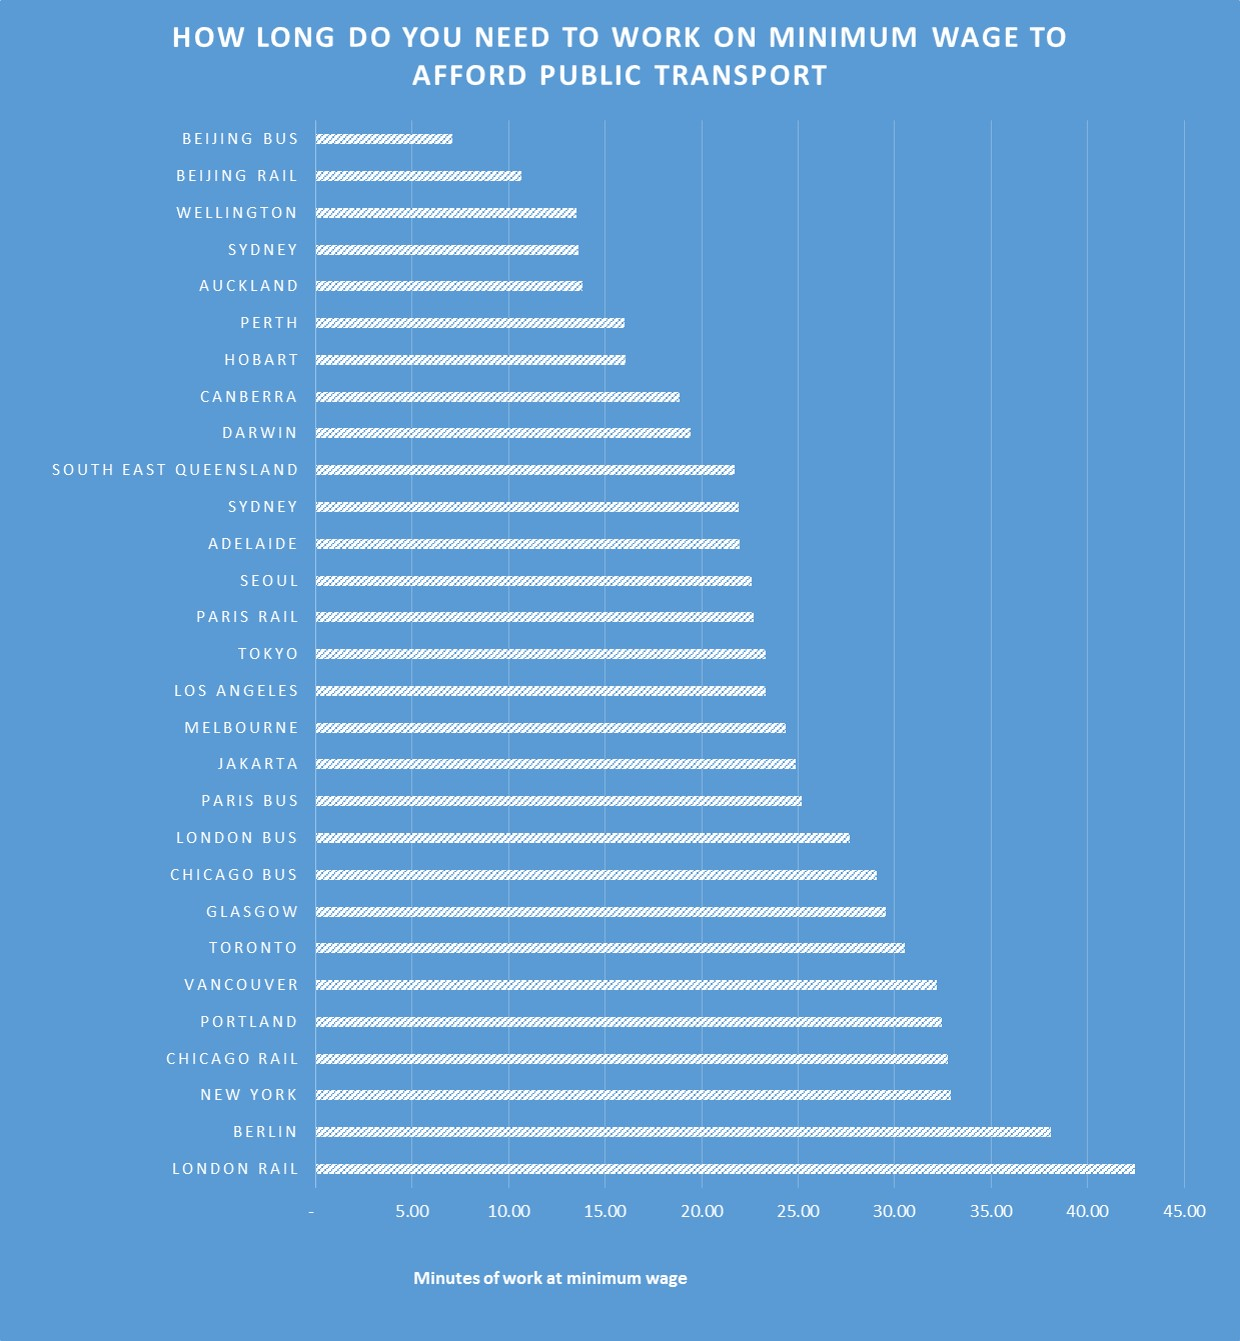 how long do you need to work to pay for public transport